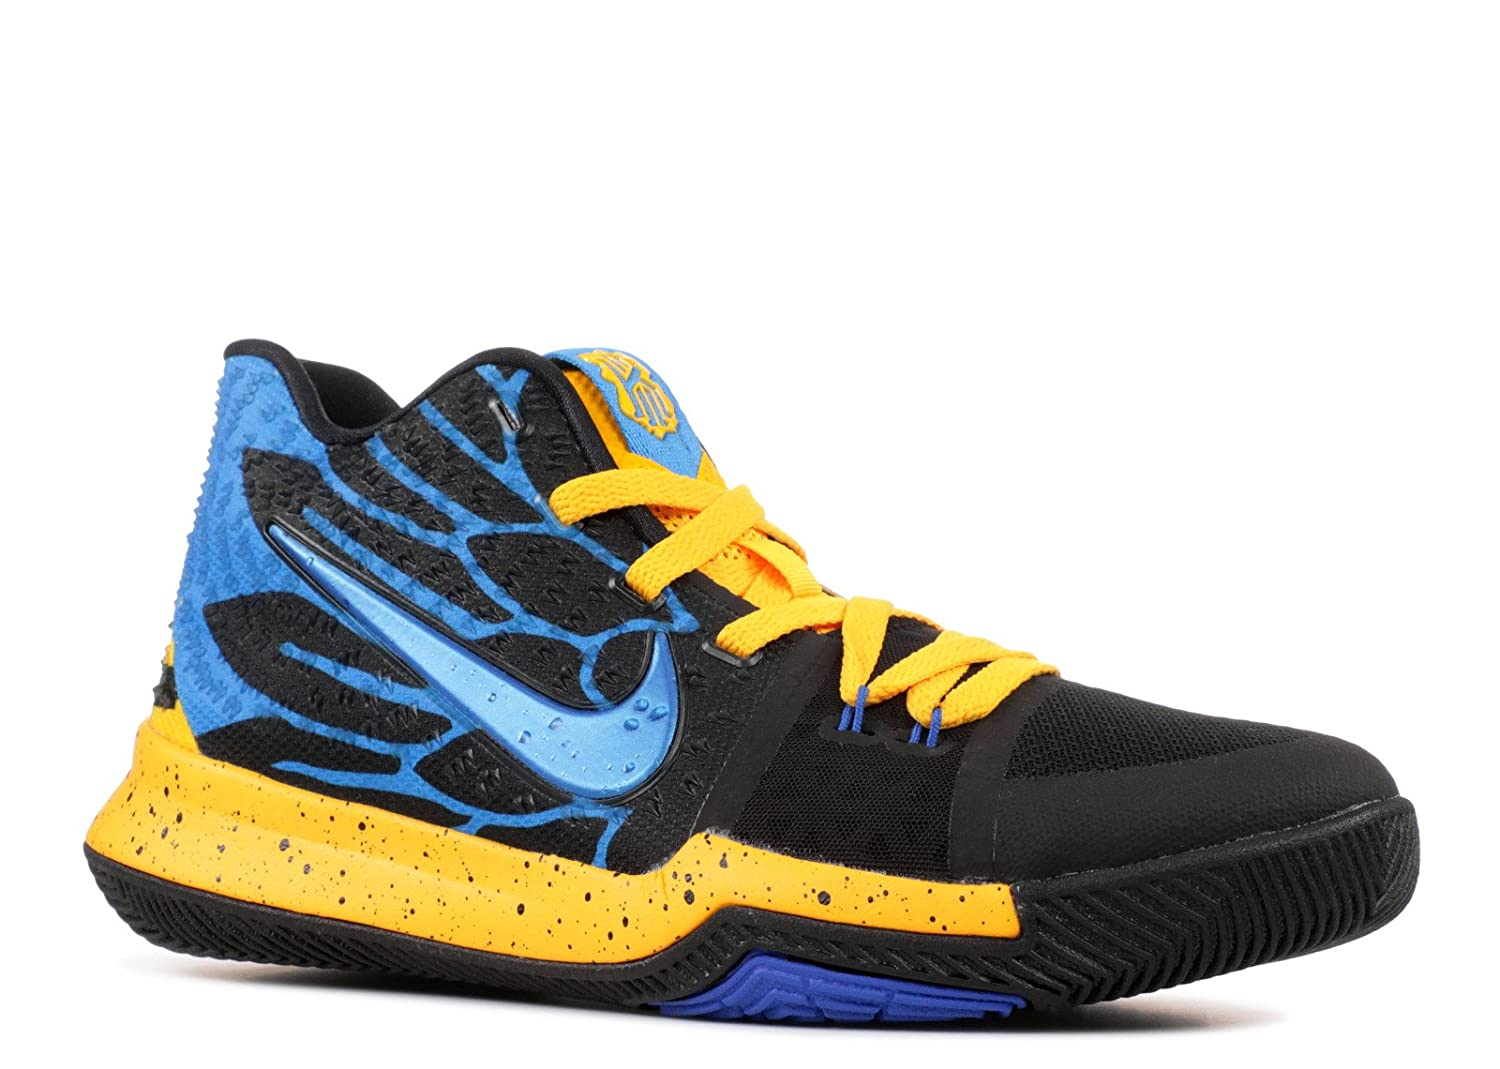 the latest 41f61 975e8 Nike Kyrie 3 What The (GS) Youth Basketball Shoes AH2287 700 University  Gold/Blue Gold (7y)